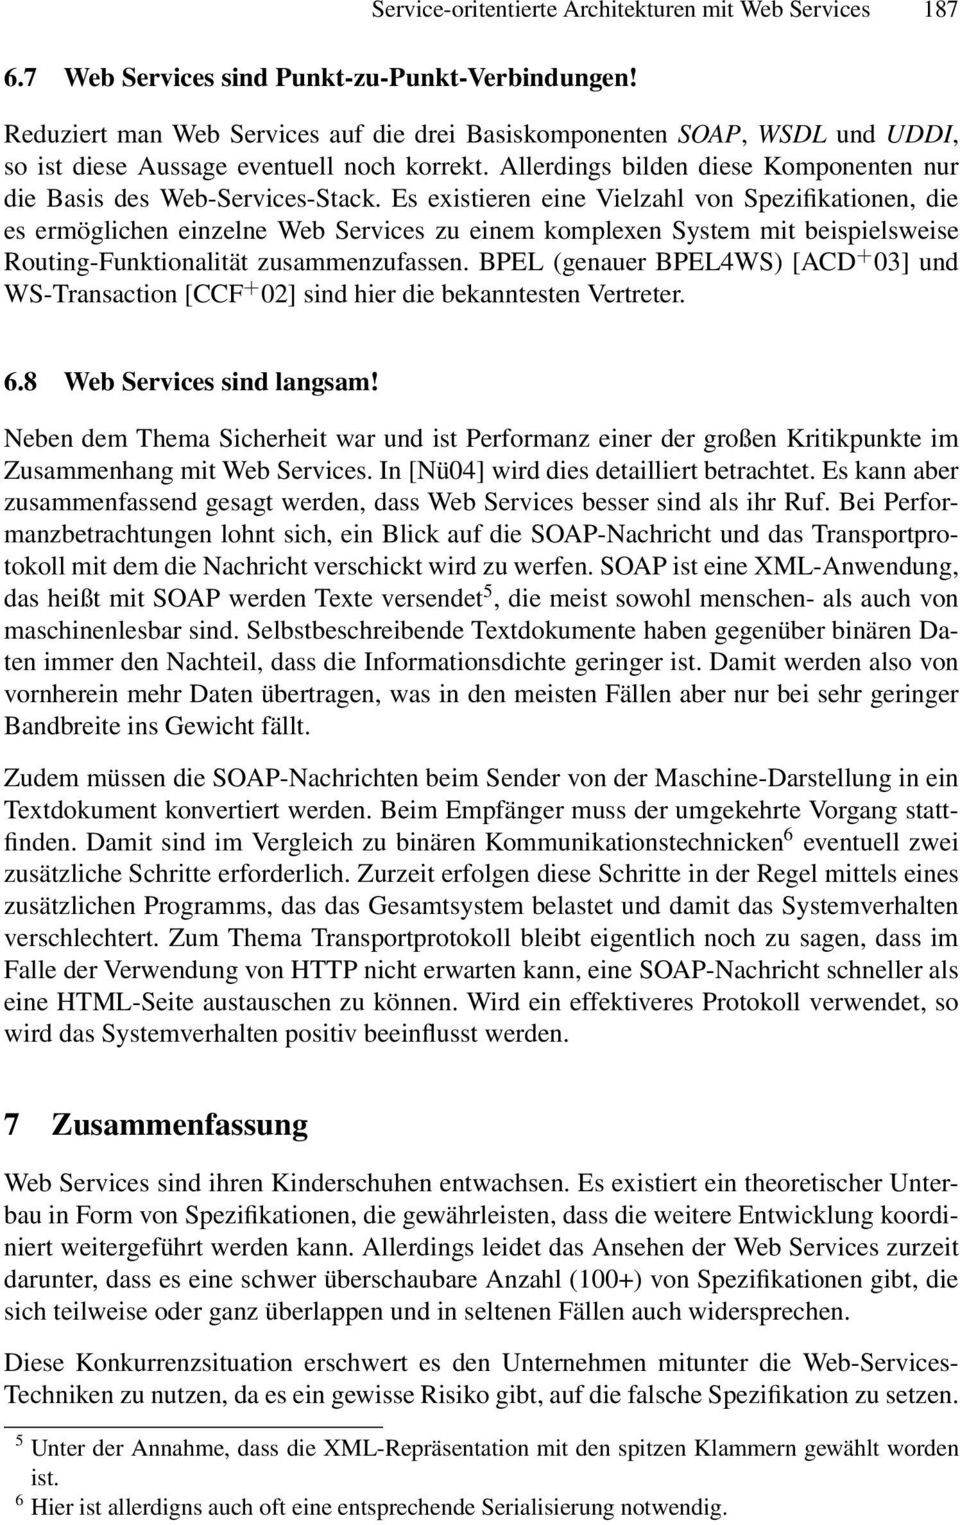 Tolle Underwriter Zusammenfassung Ideen - Entry Level Resume ...